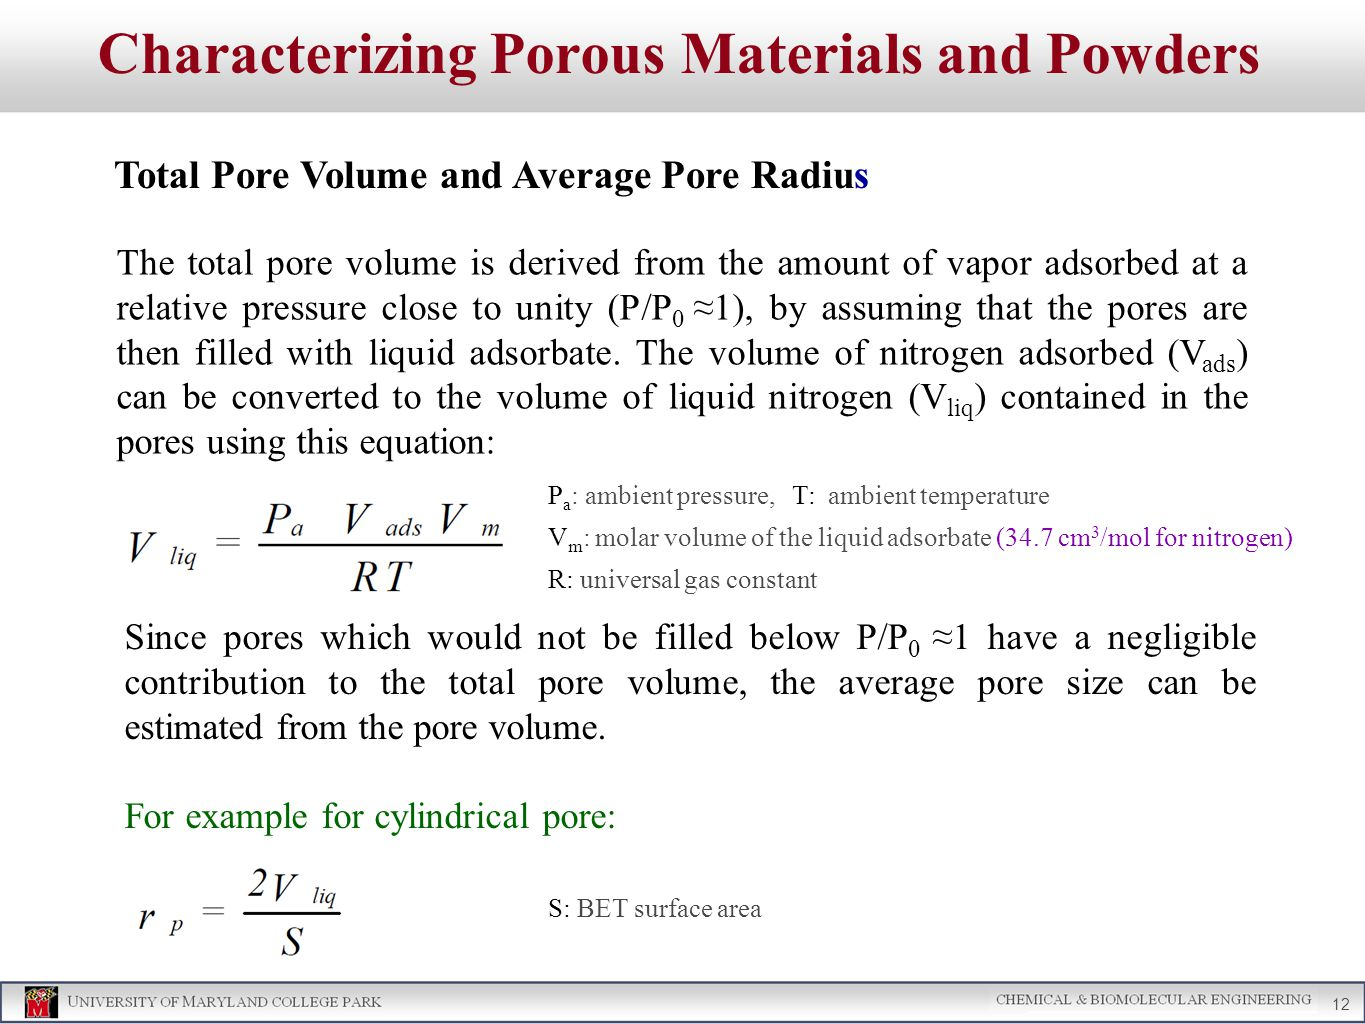 Characterizing Porous Materials and Powders Total Pore Volume and Average Pore Radius 12 The total pore volume is derived from the amount of vapor adsorbed at a relative pressure close to unity (P/P 0 ≈1), by assuming that the pores are then filled with liquid adsorbate.